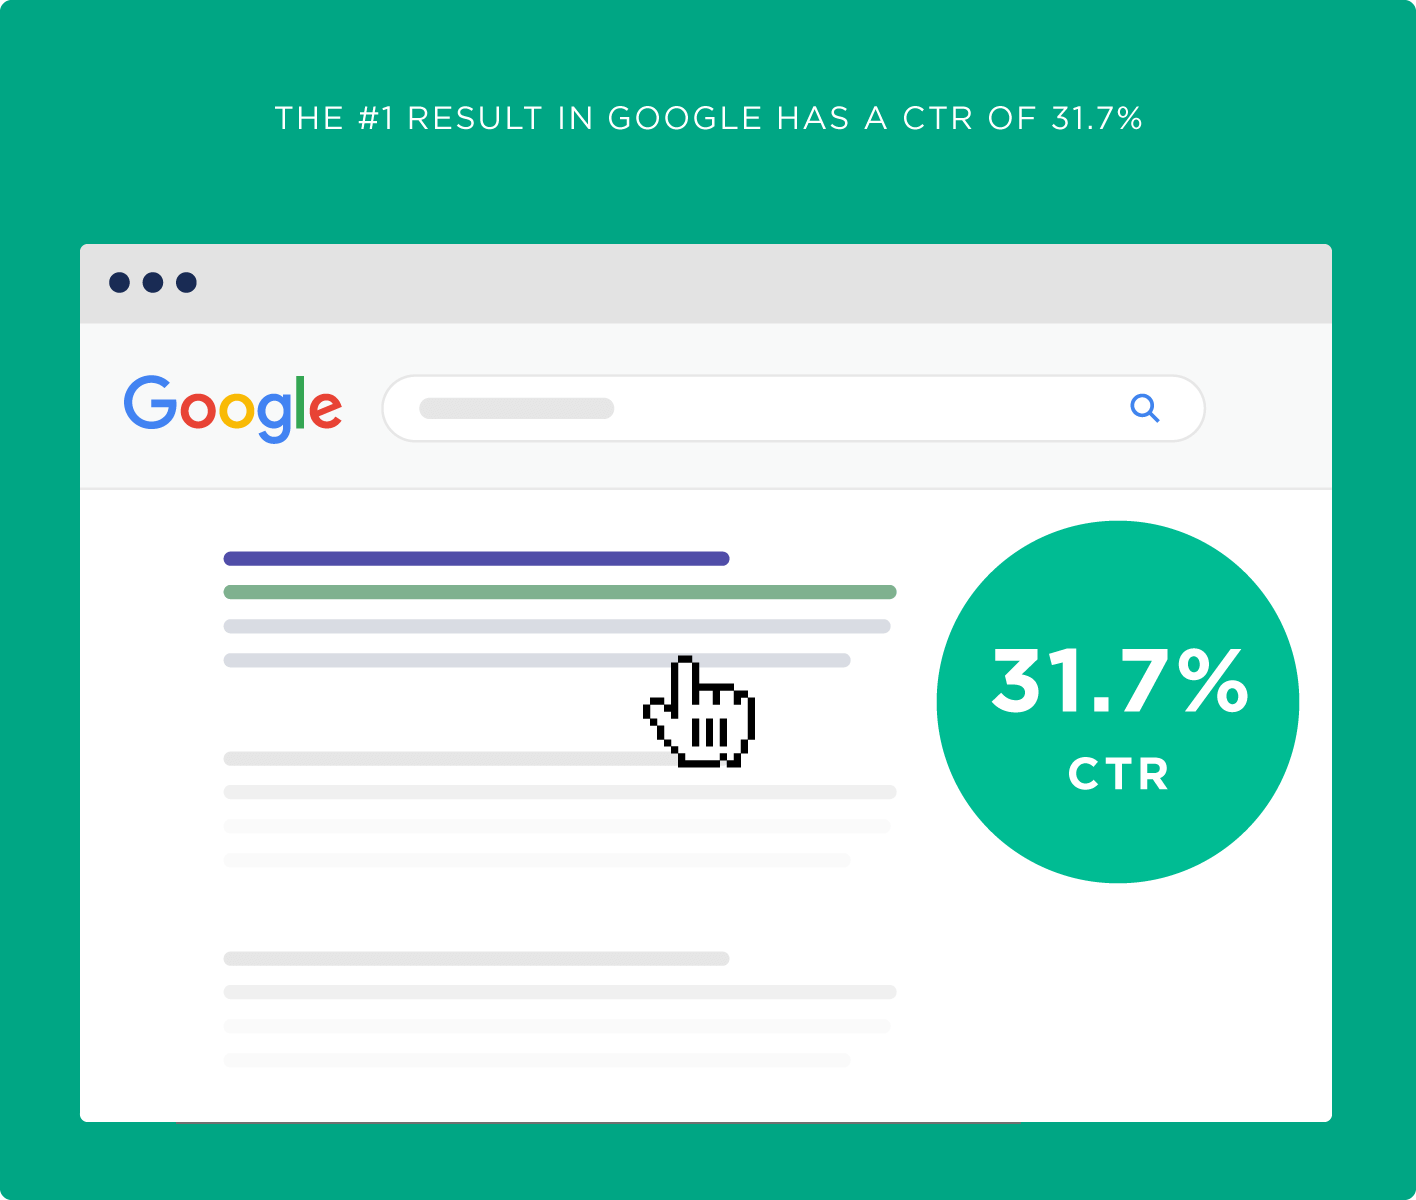 The first result in Google has a CTR of 31.7%